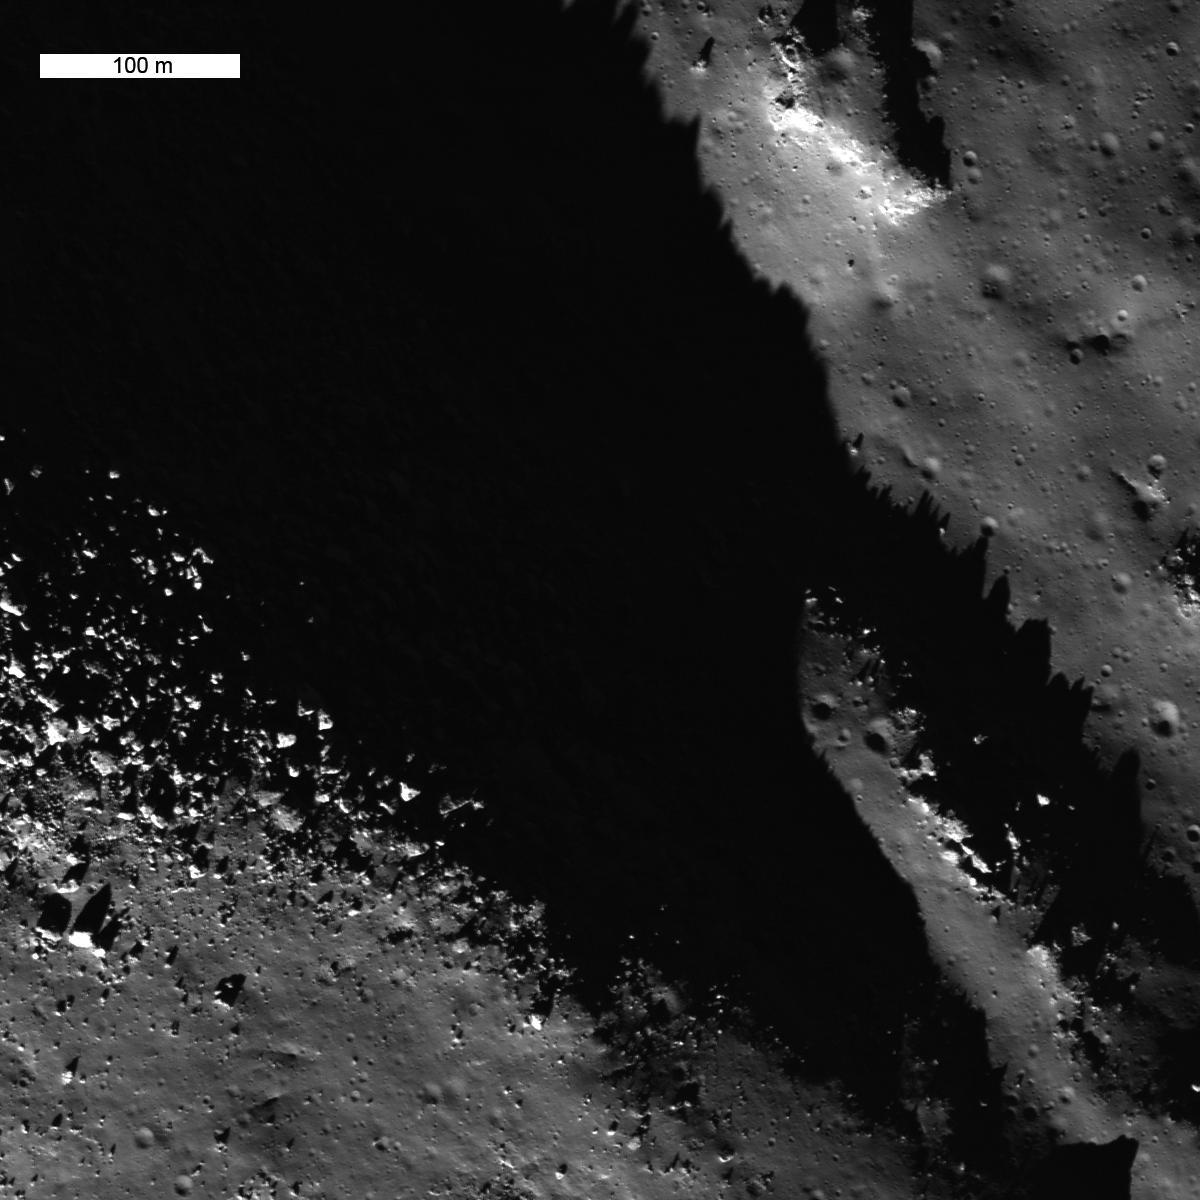 shadowy depths and brightly-illuminated rocks on the Moon